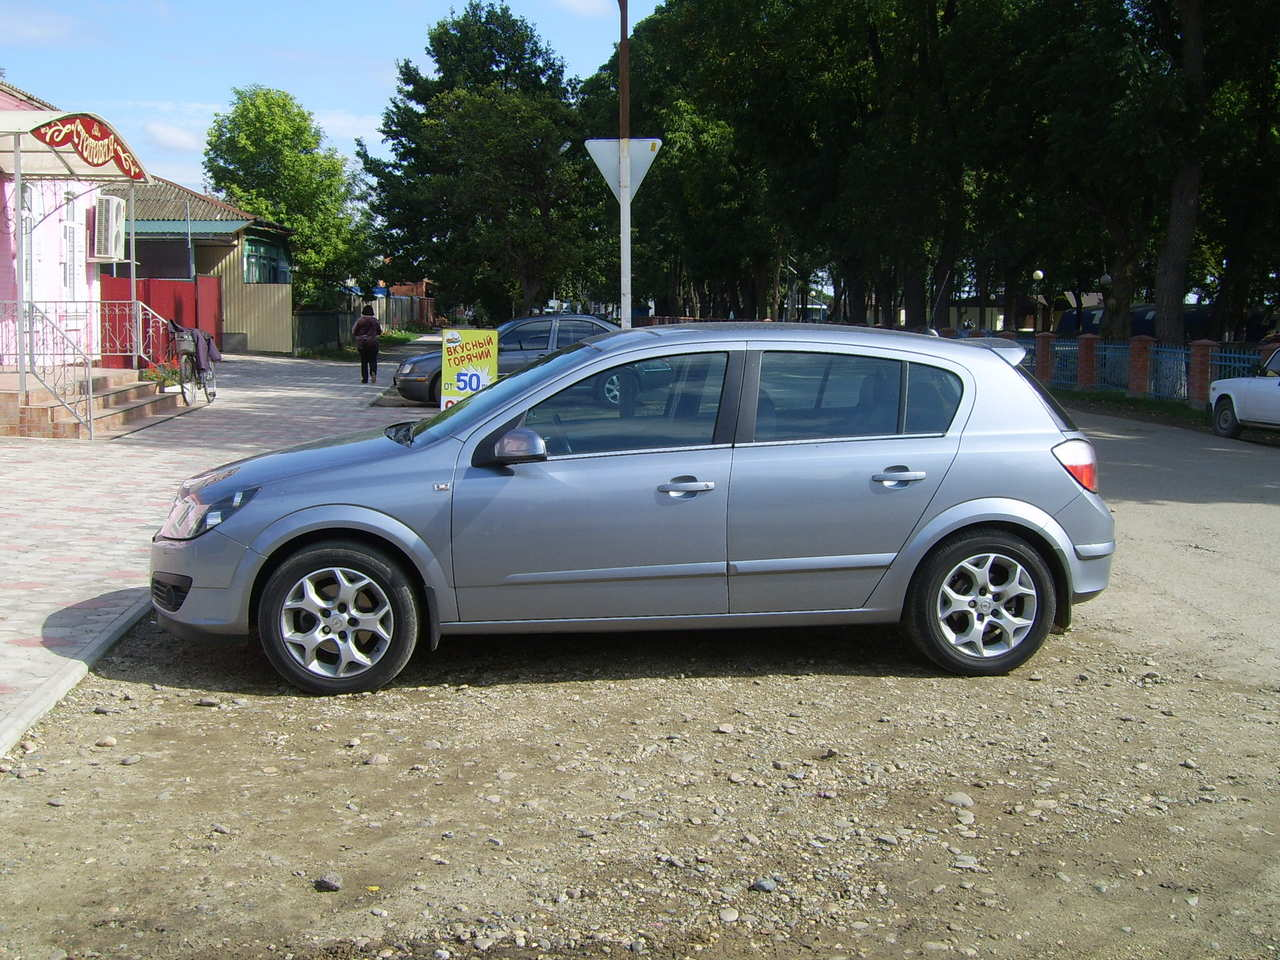 2006 opel astra photos 1 8 gasoline ff automatic for sale. Black Bedroom Furniture Sets. Home Design Ideas